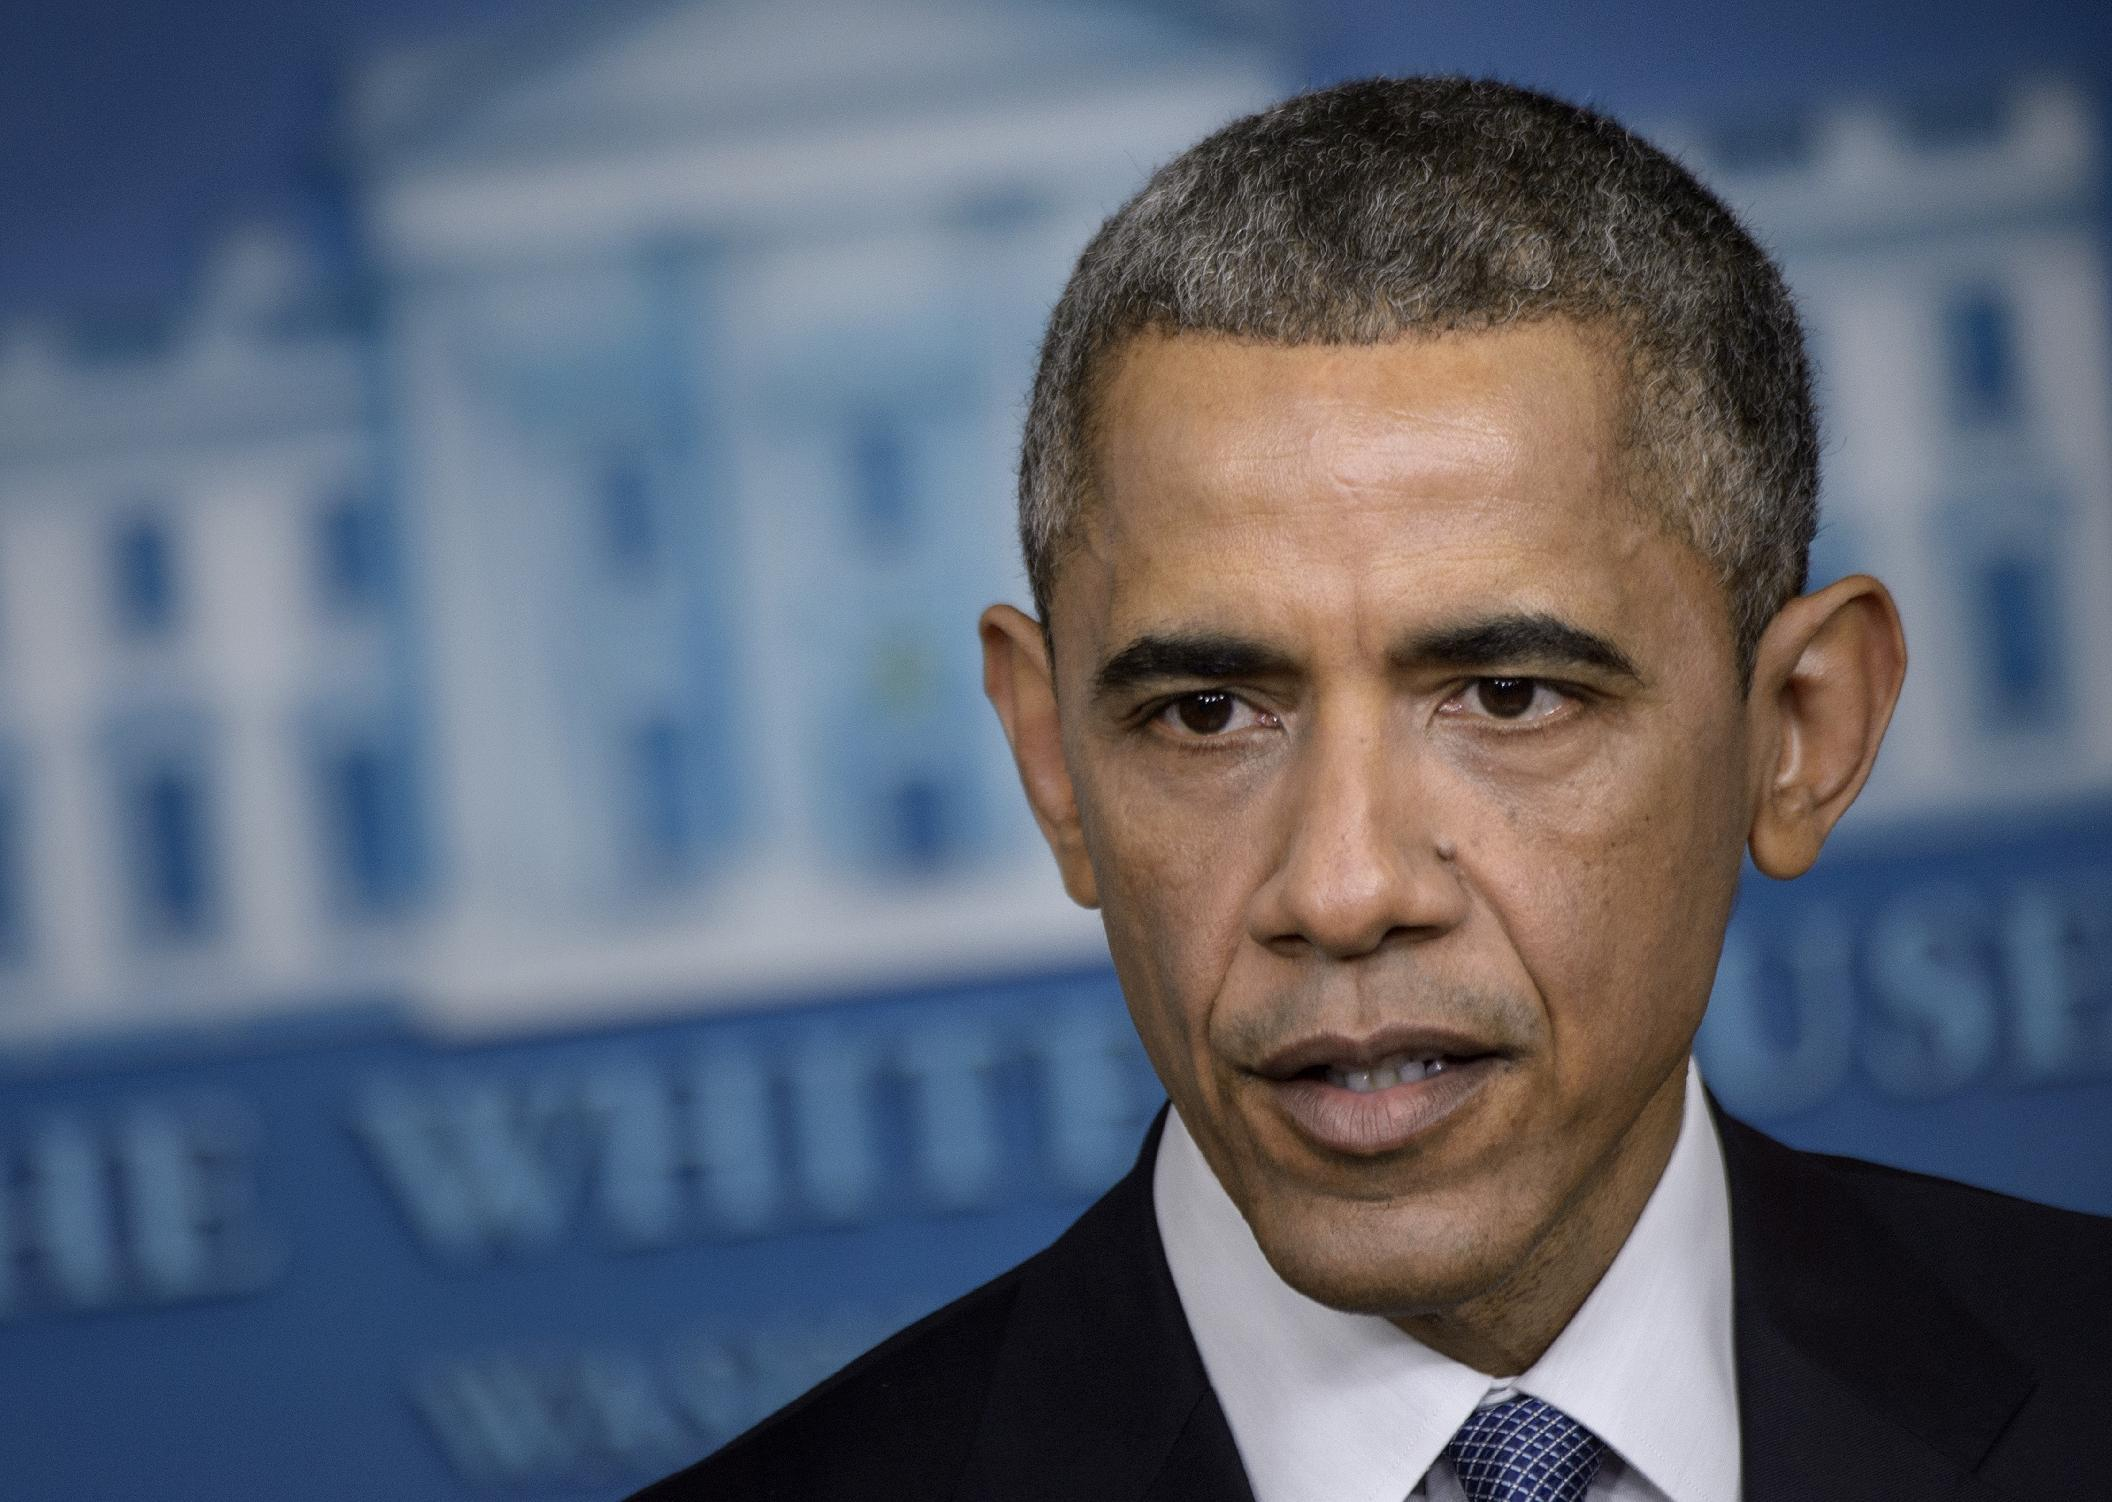 Obama warns N. Korea over Sony hack: 'We will respond'